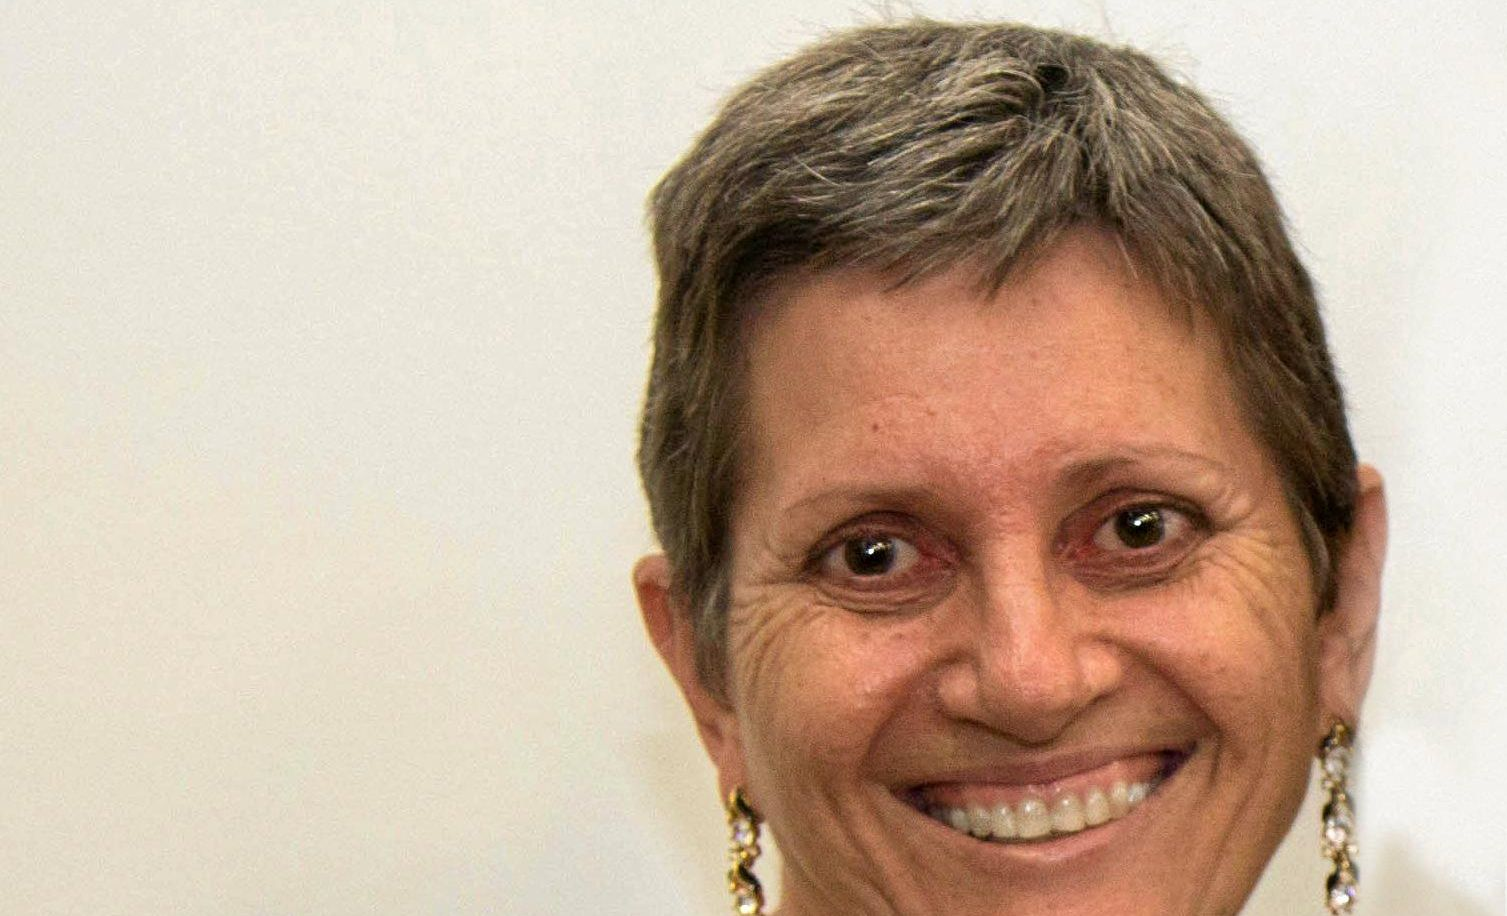 GIVING BACK: Moranbah local, Marcia Goulevitch was selected to be a baton bearer for the 2018 Commonwealth Games.